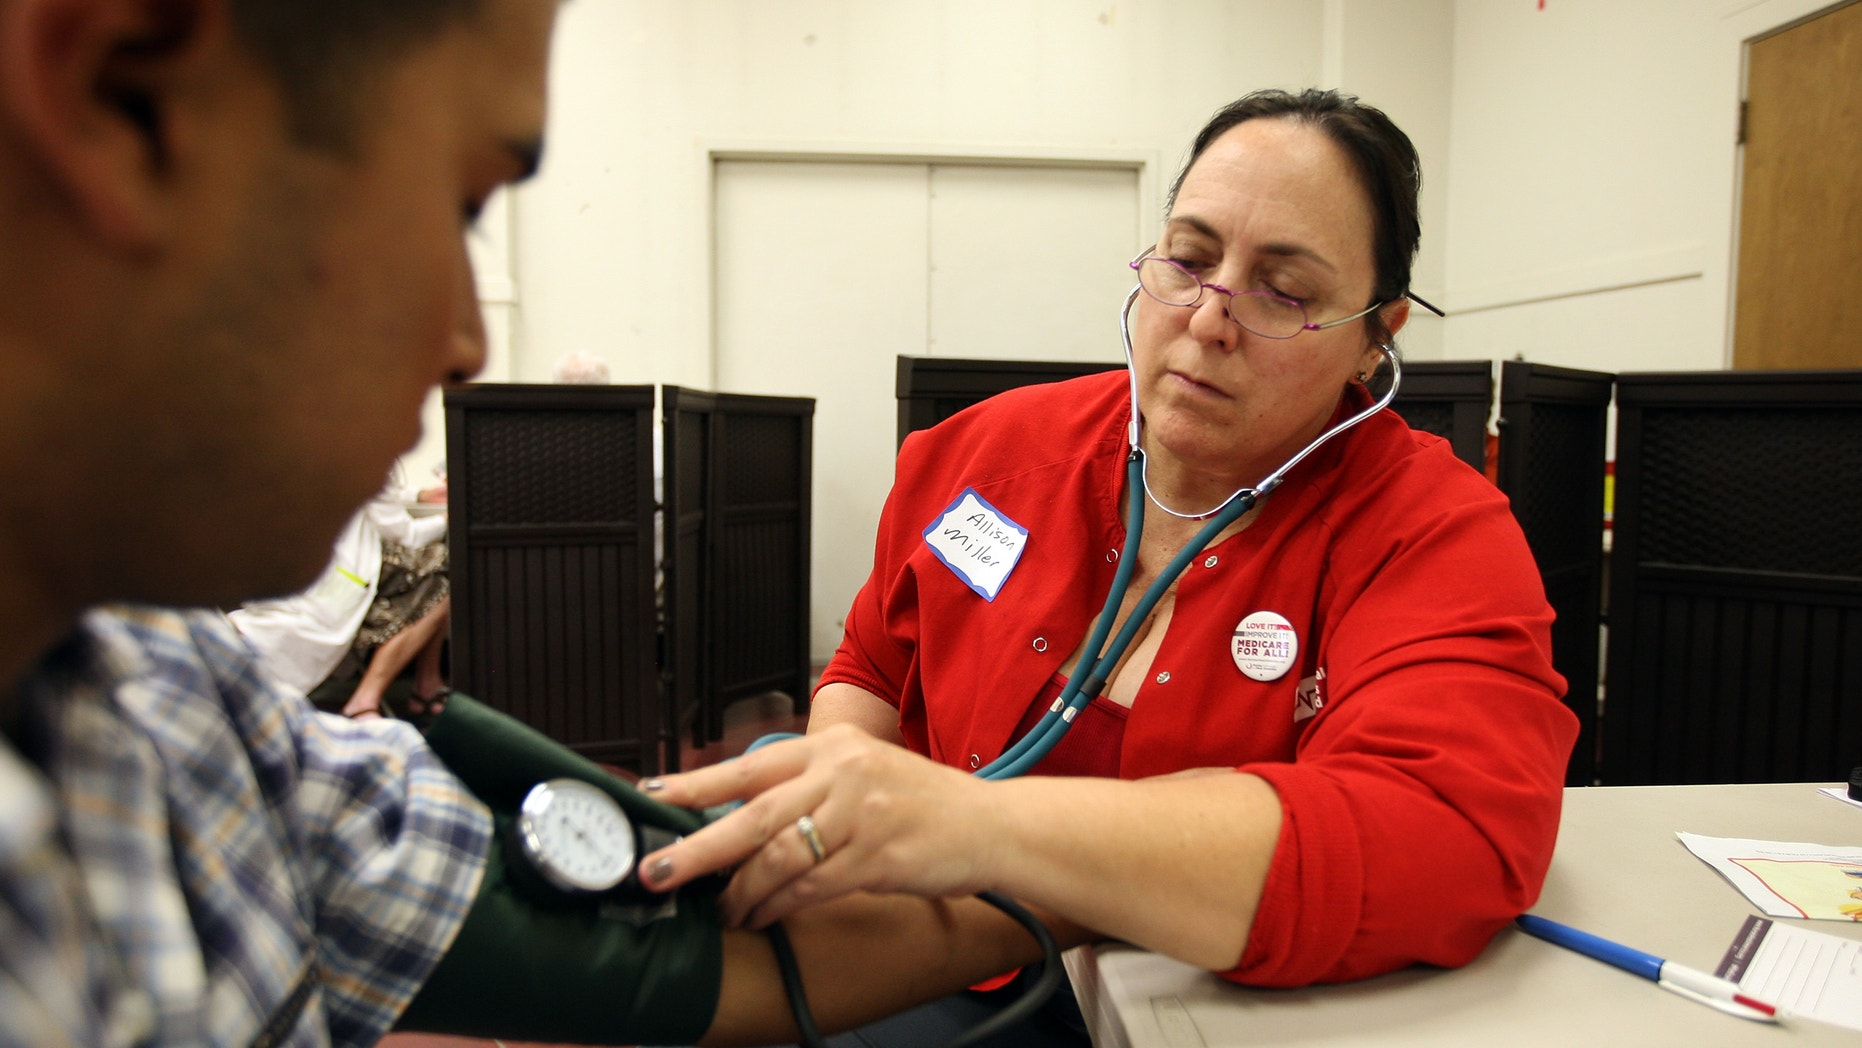 LOS ANGELES, CA - JULY 10:  Nurses and physicians give free basic health screenings and call attention to what they say is the ongoing healthcare emergency despite the decision of the U.S. Supreme Court to uphold the Affordable Care Act, on July 10, 2012 in Los Angeles, California. Three days of free screenings in the Los Angeles area are part of the Medicare for All tour which is making up to two dozen stops across California between June 19 and July 12. The California Nurses Association says that 30 percent of Los Angeles County adults are uninsured and 18 percent cannot afford doctor visits.   (Photo by David McNew/Getty Images)